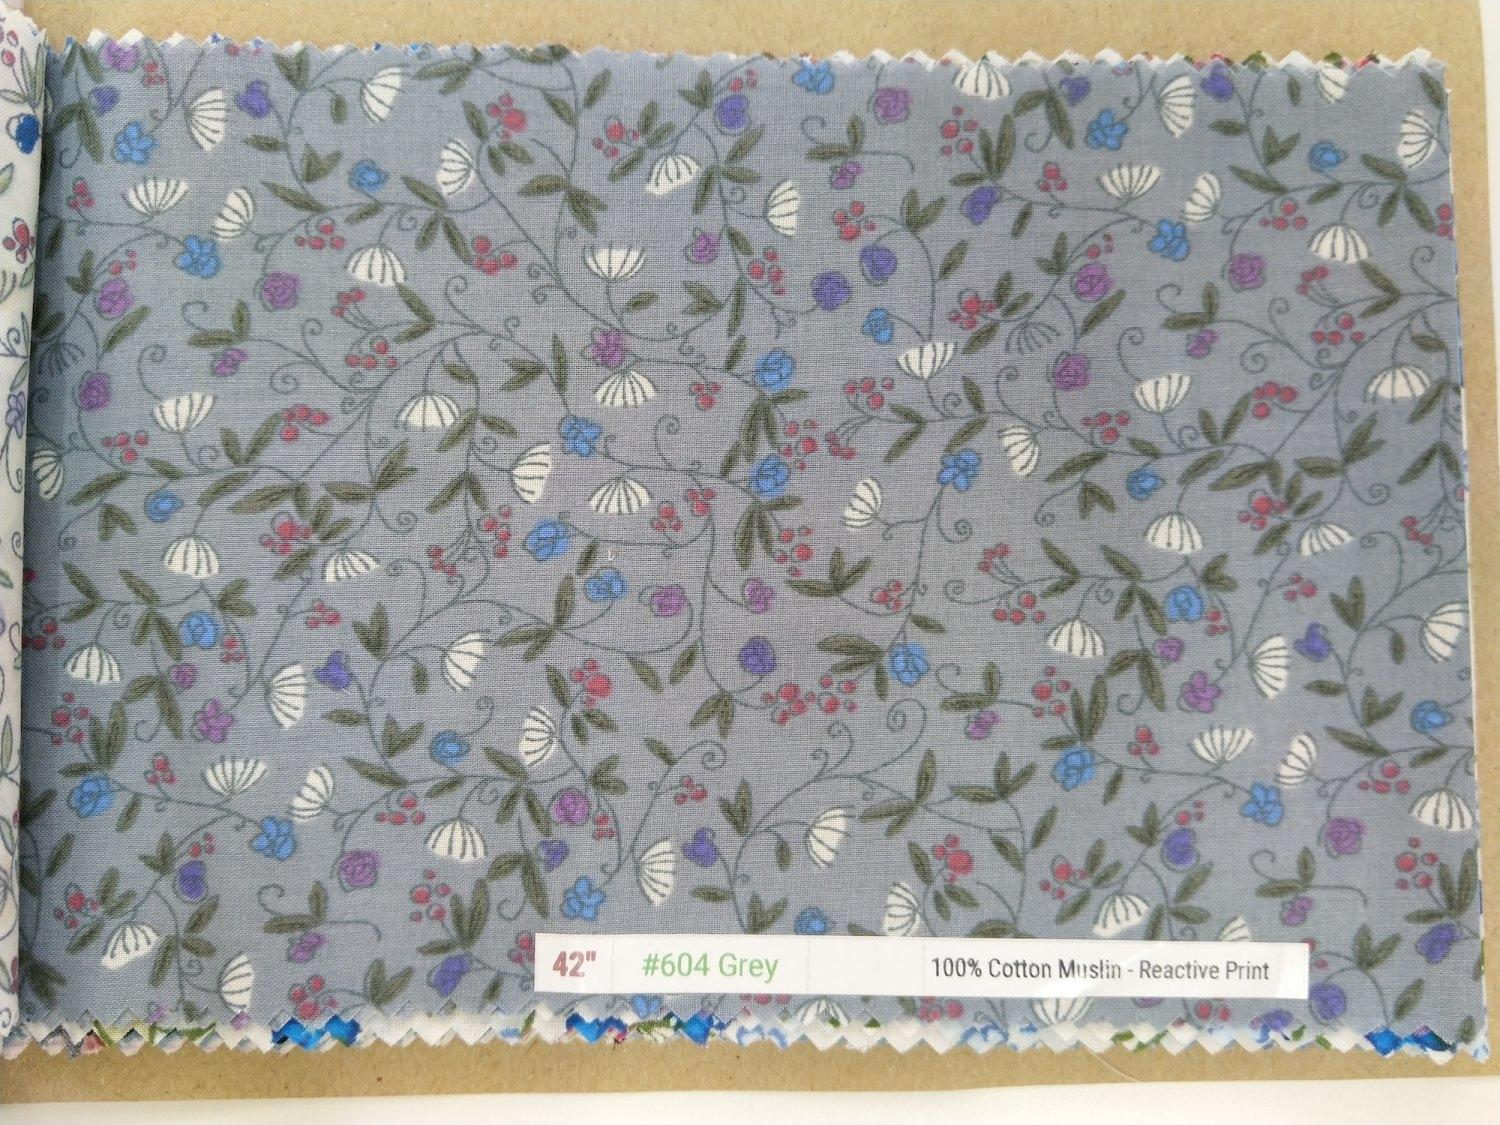 "6098 Cotton Muslin 42"" - Flower Print #604 Grey"